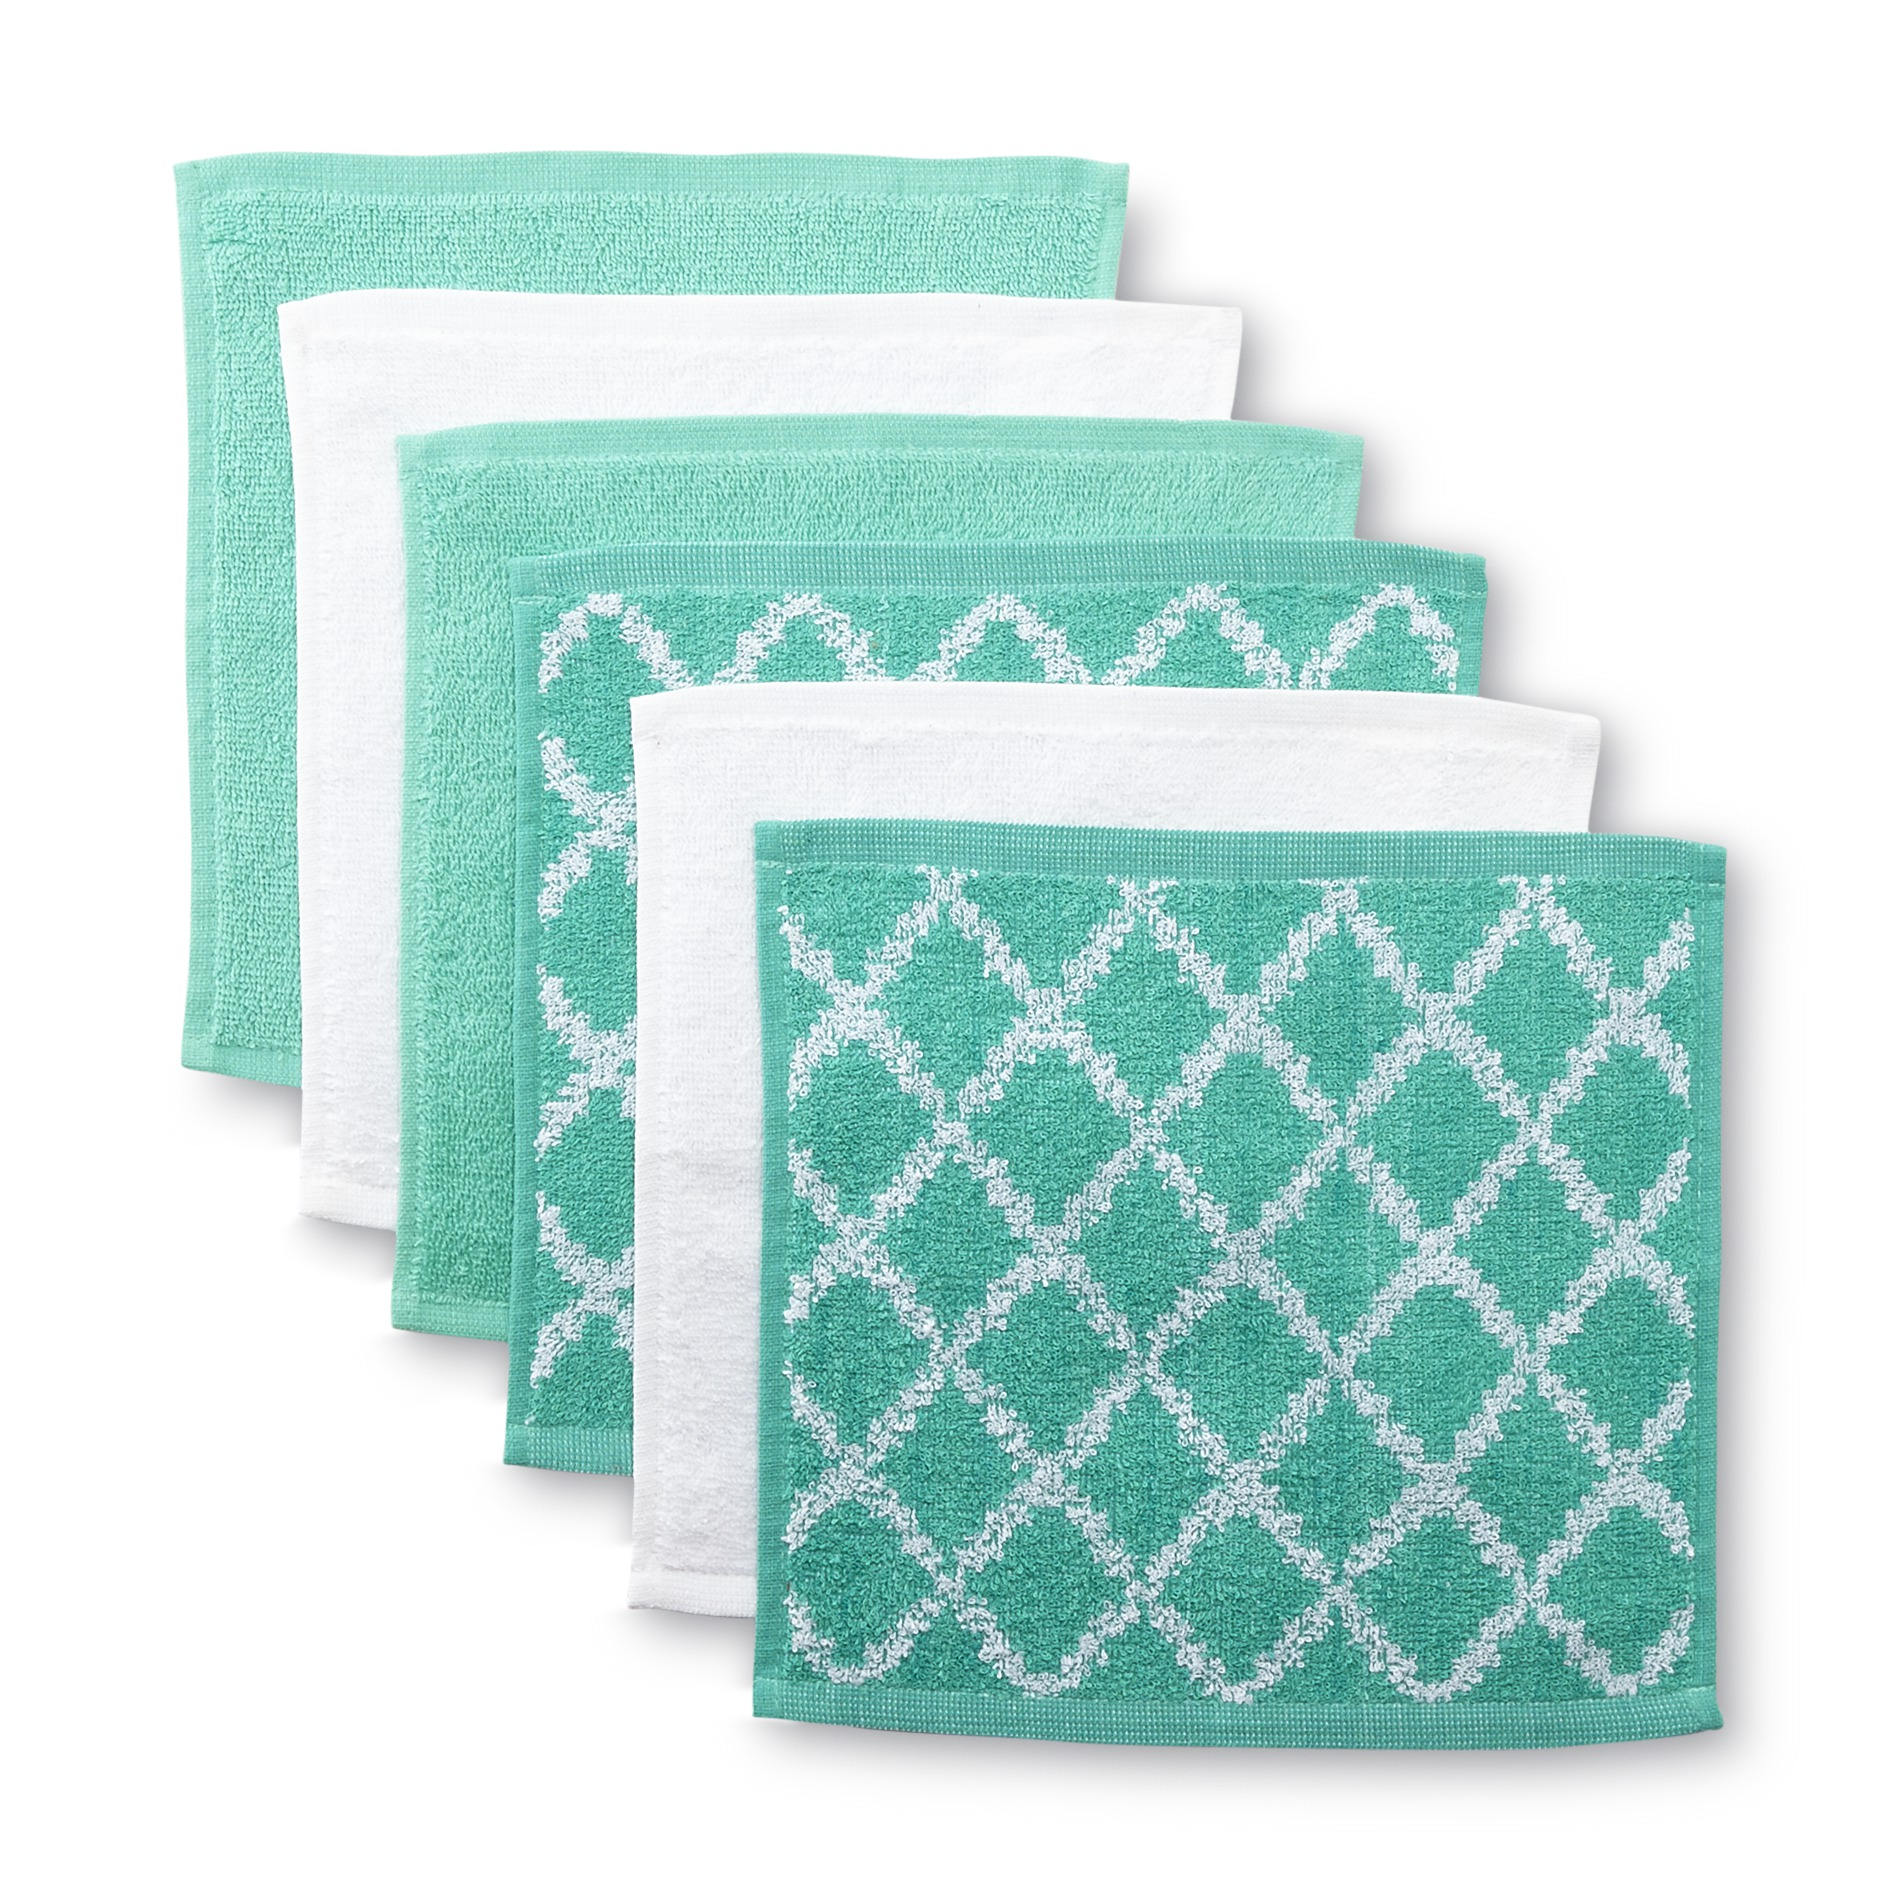 Essential Home 6-Pack Washcloths - Moroccan Print